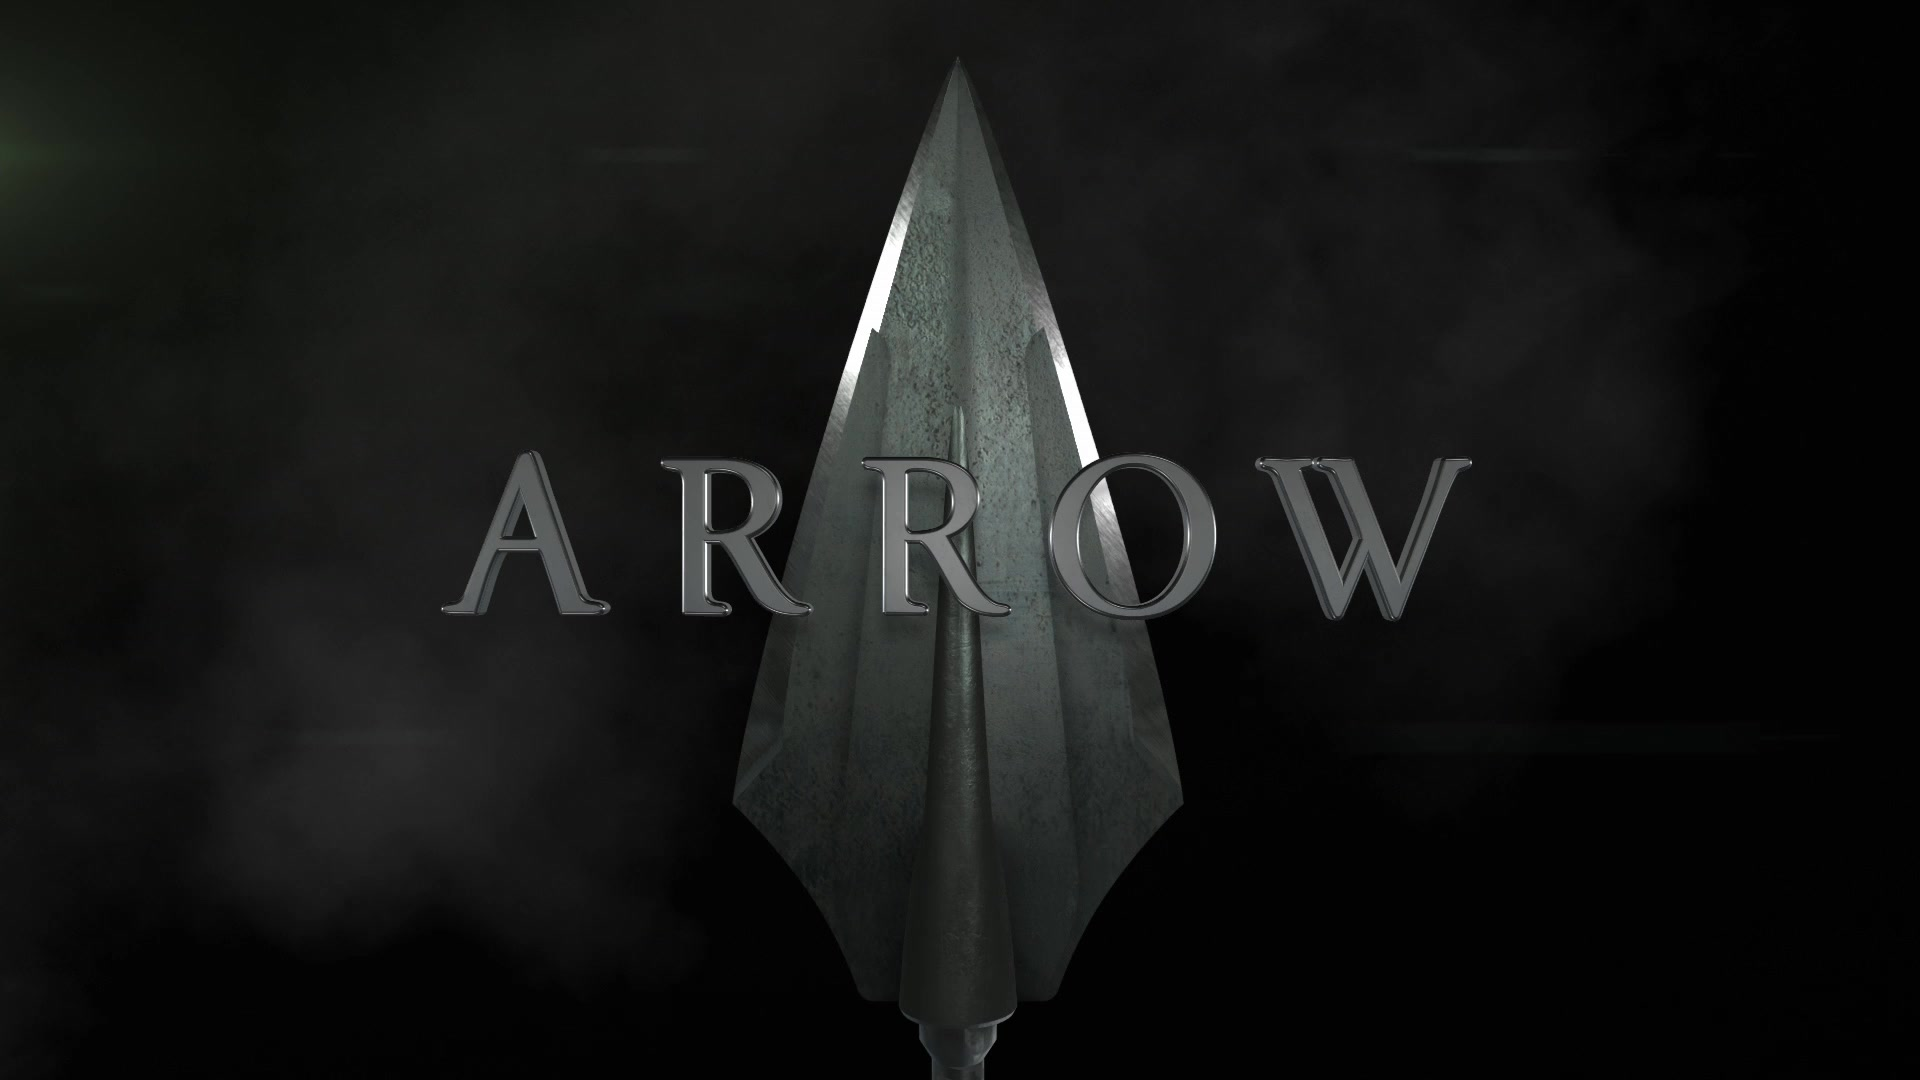 Arrow (TV Series) Episode: My Name Is Emiko Queen